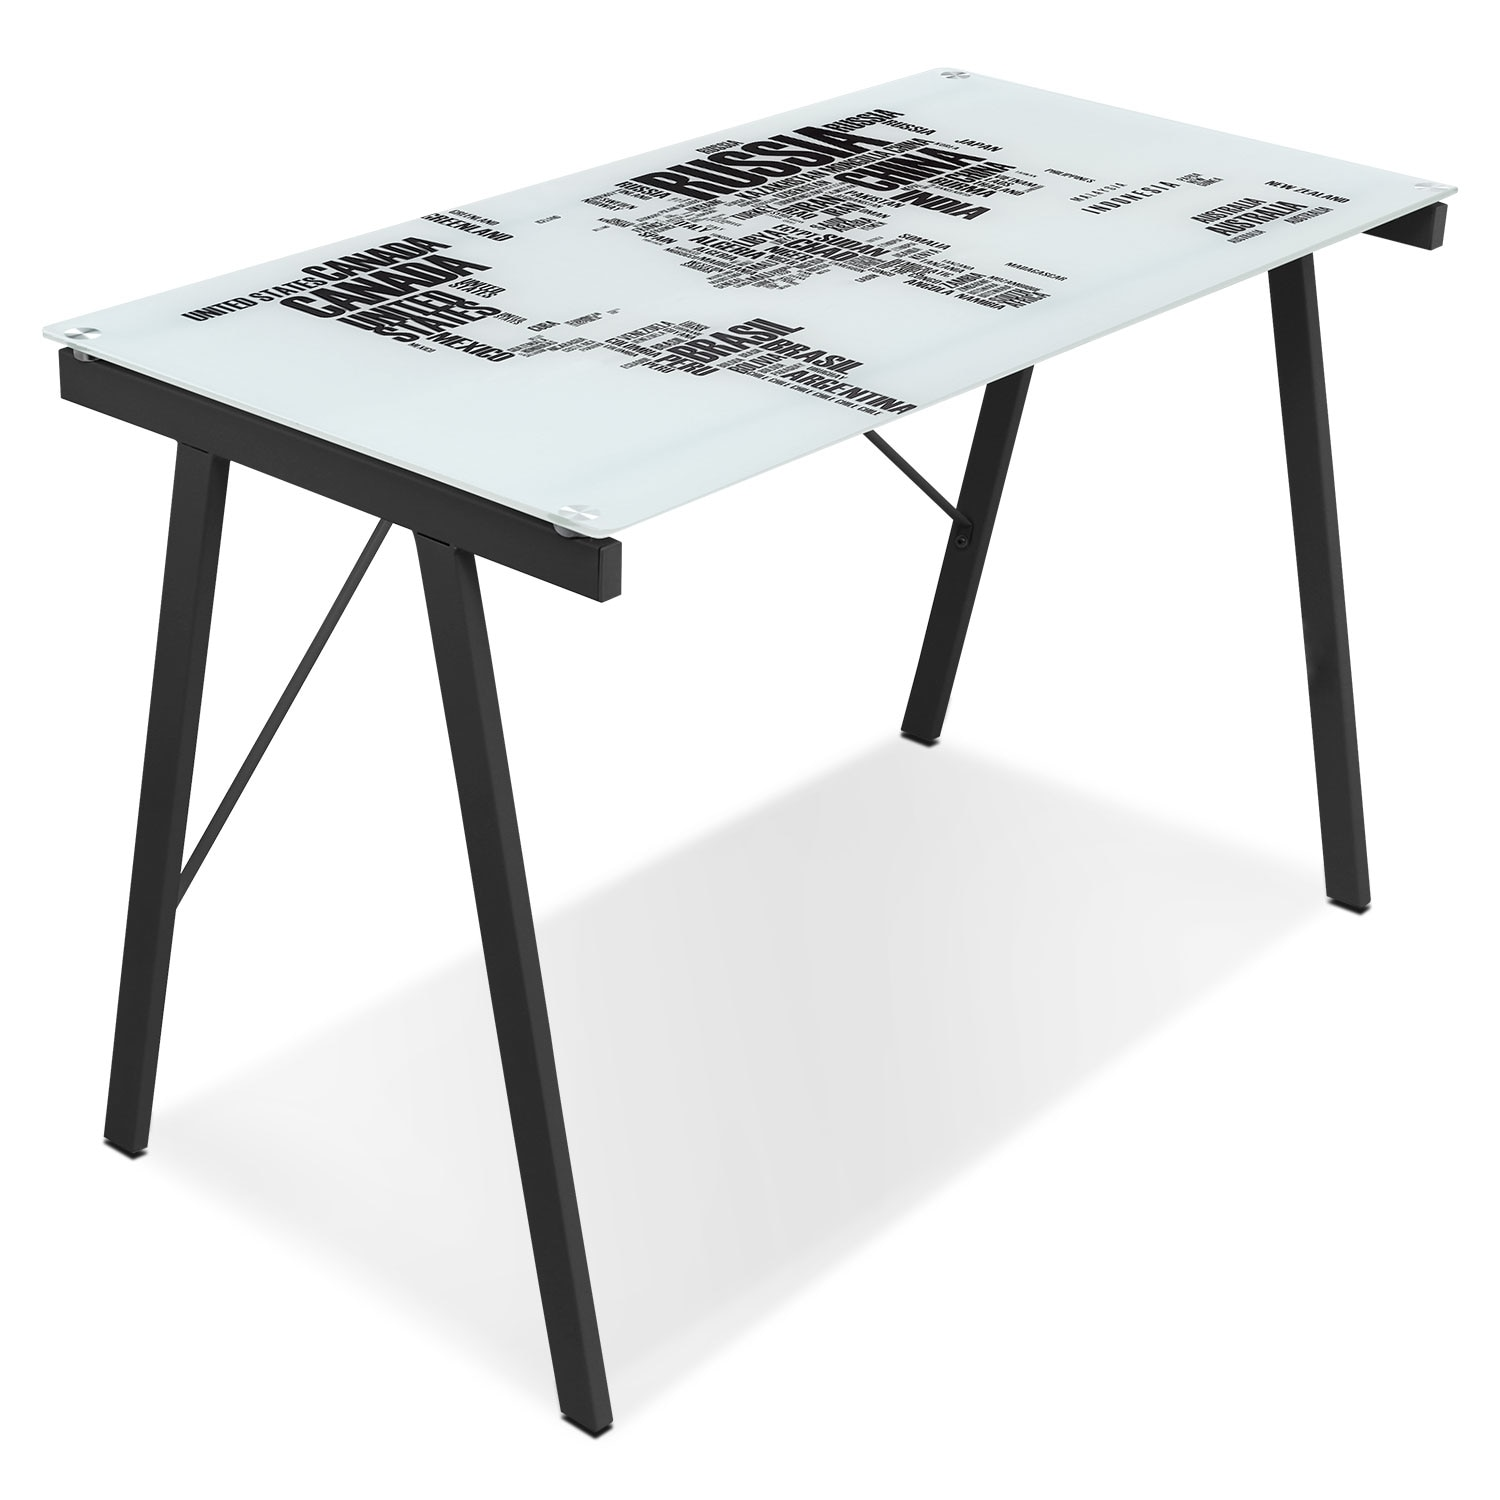 Home Office Furniture - Continent Desk - Multi